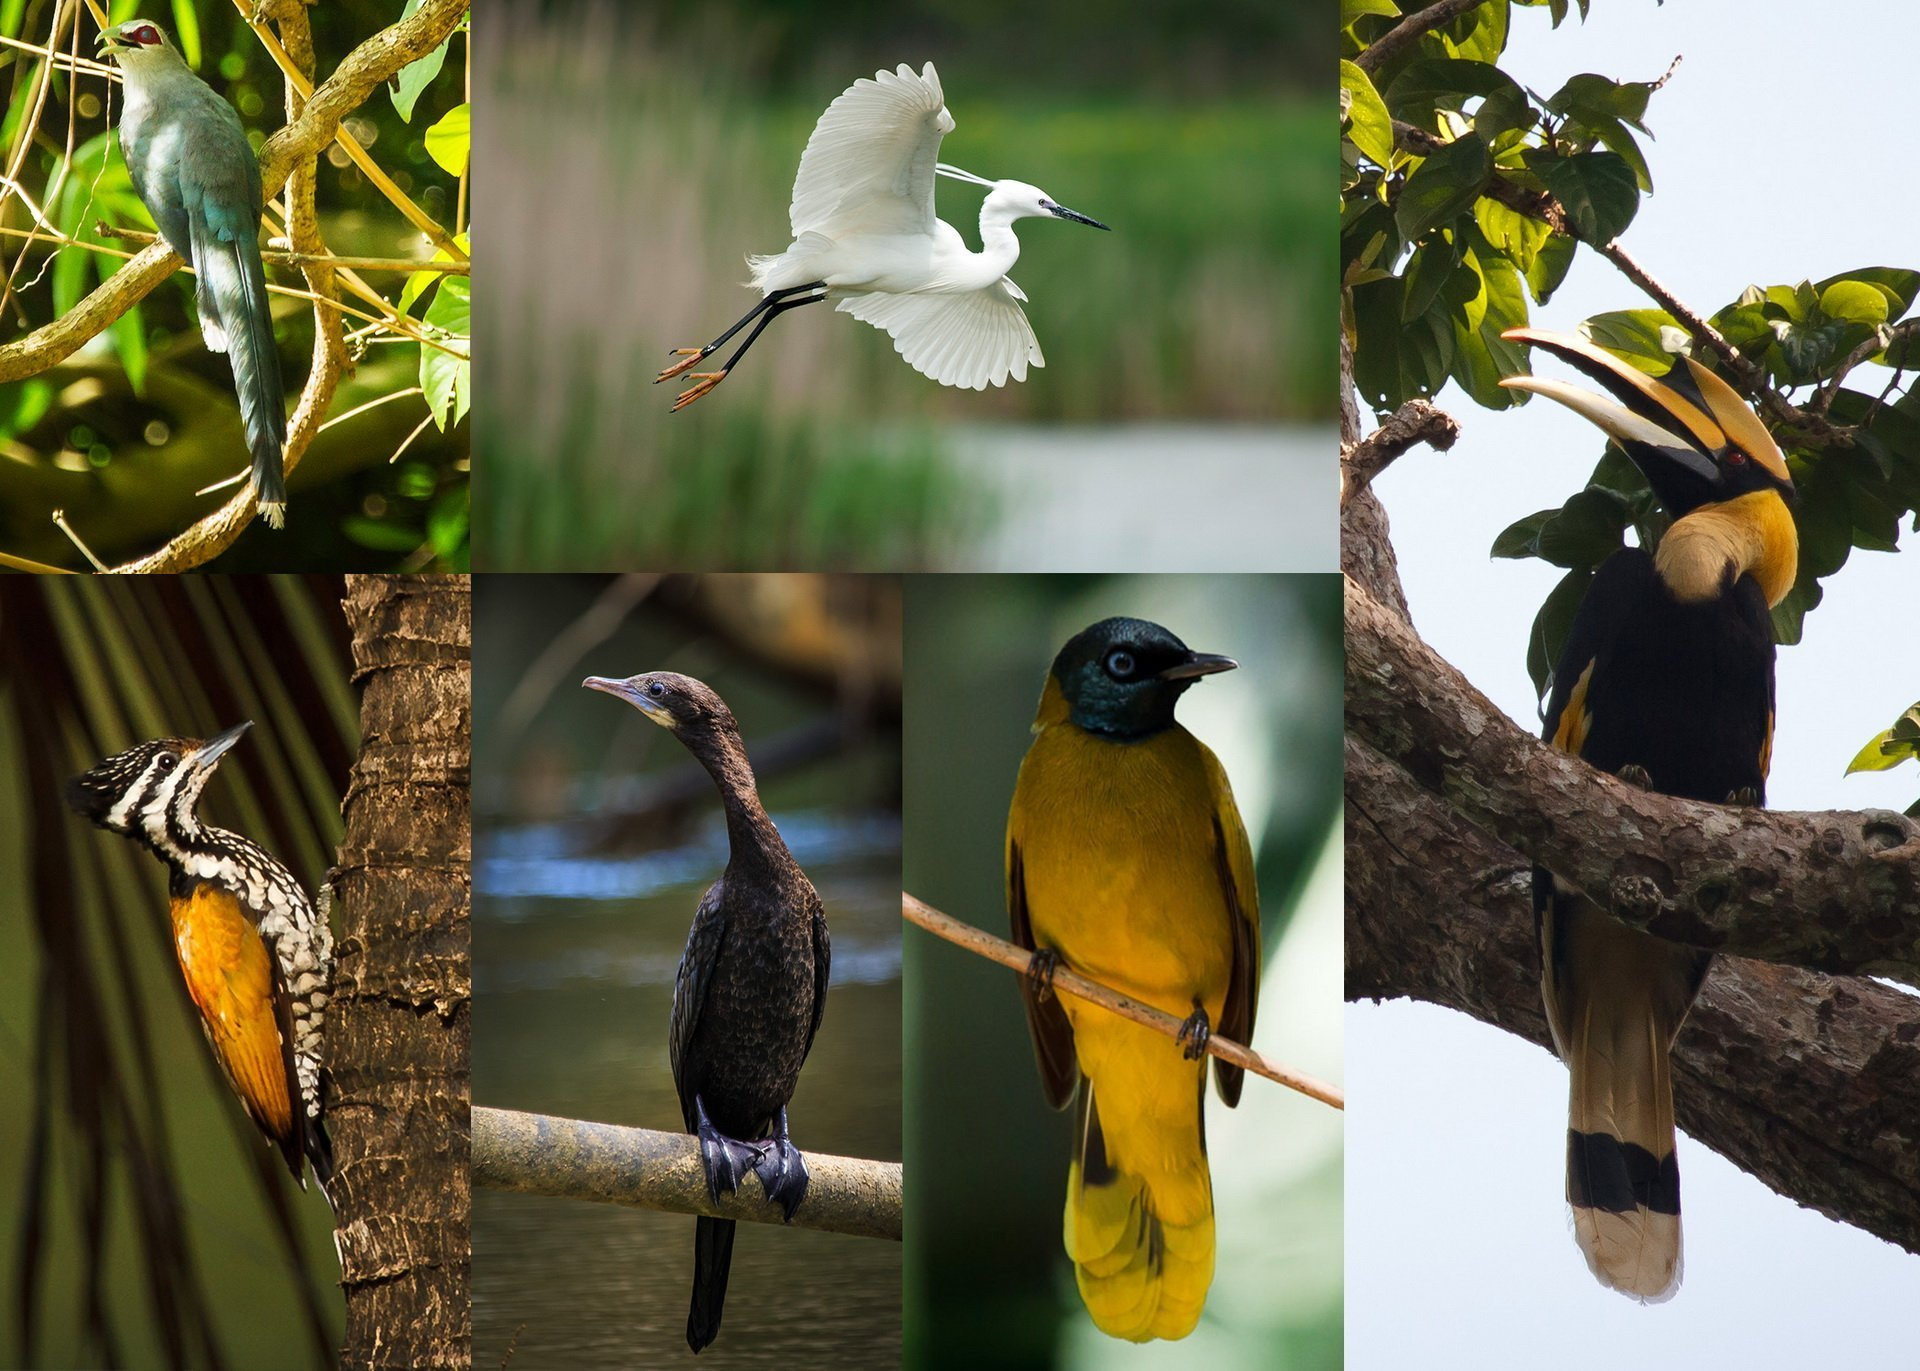 There are over 300 species of birds existing in Khao Sok National Park